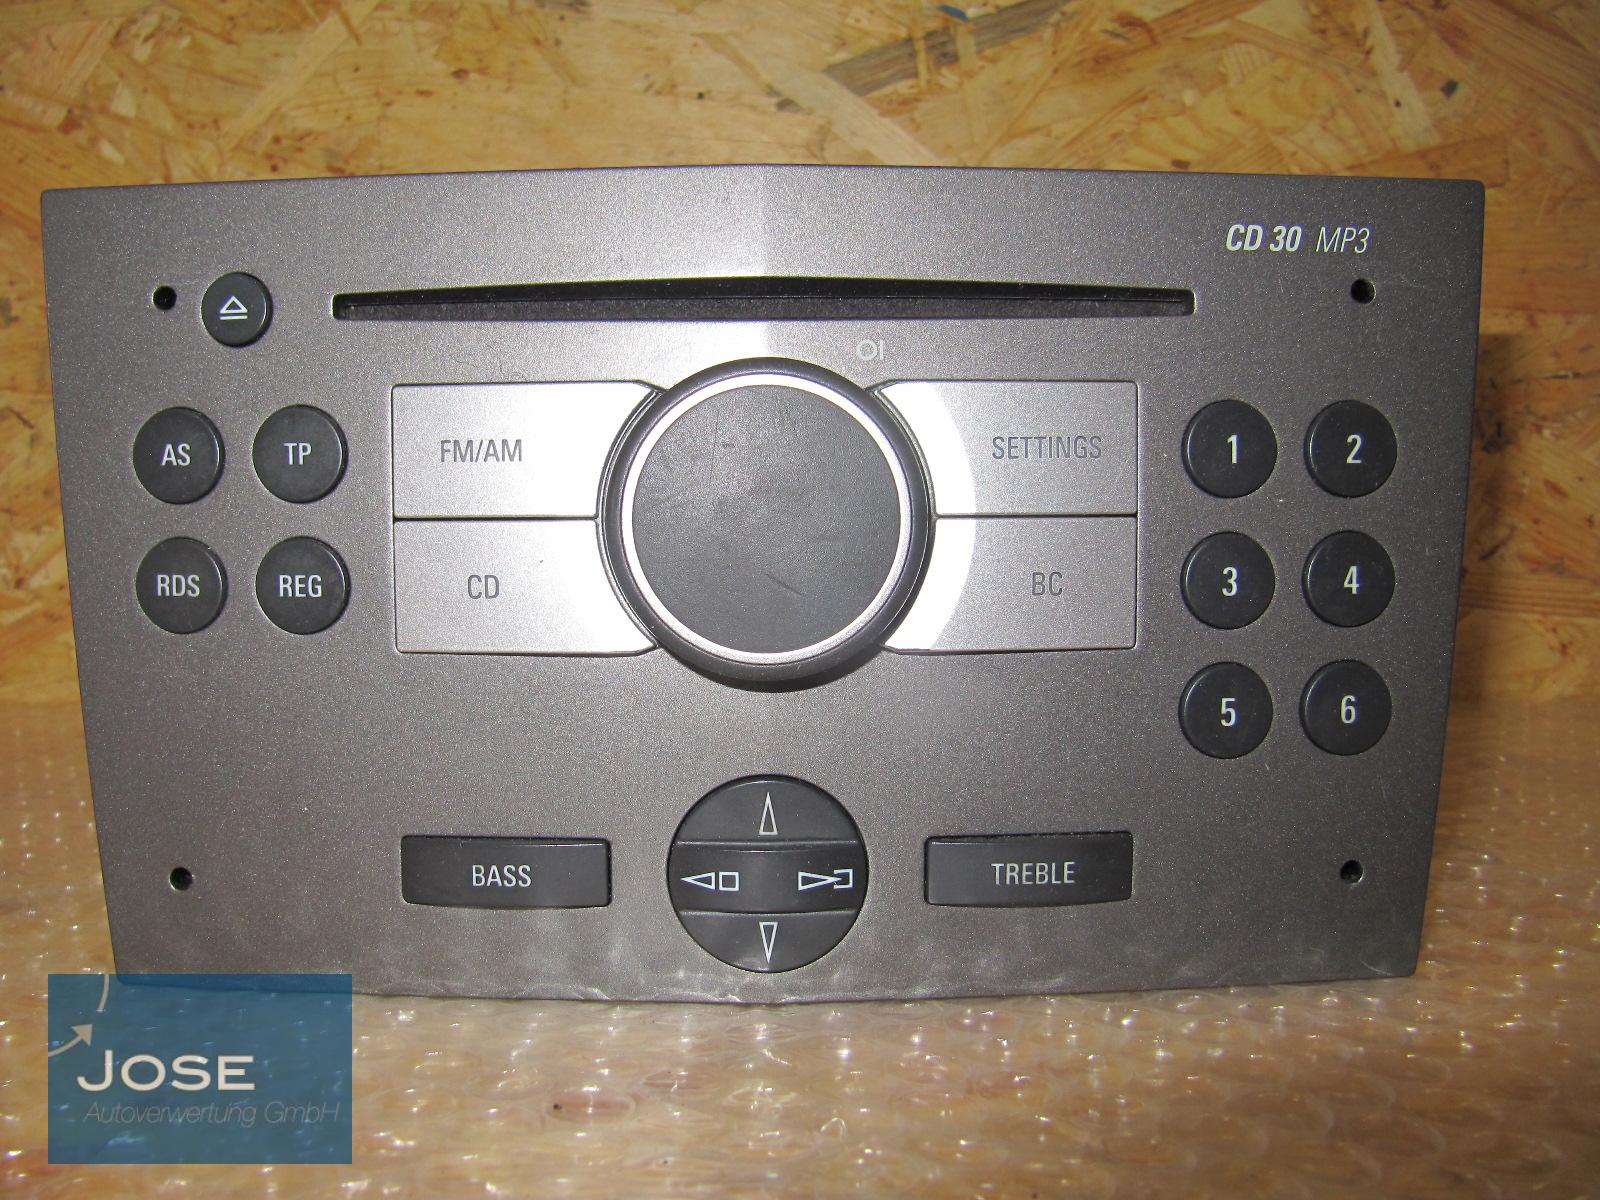 original autoradio cd radio cd30 mp3 az opel astra h 2005 13154304 ebay. Black Bedroom Furniture Sets. Home Design Ideas